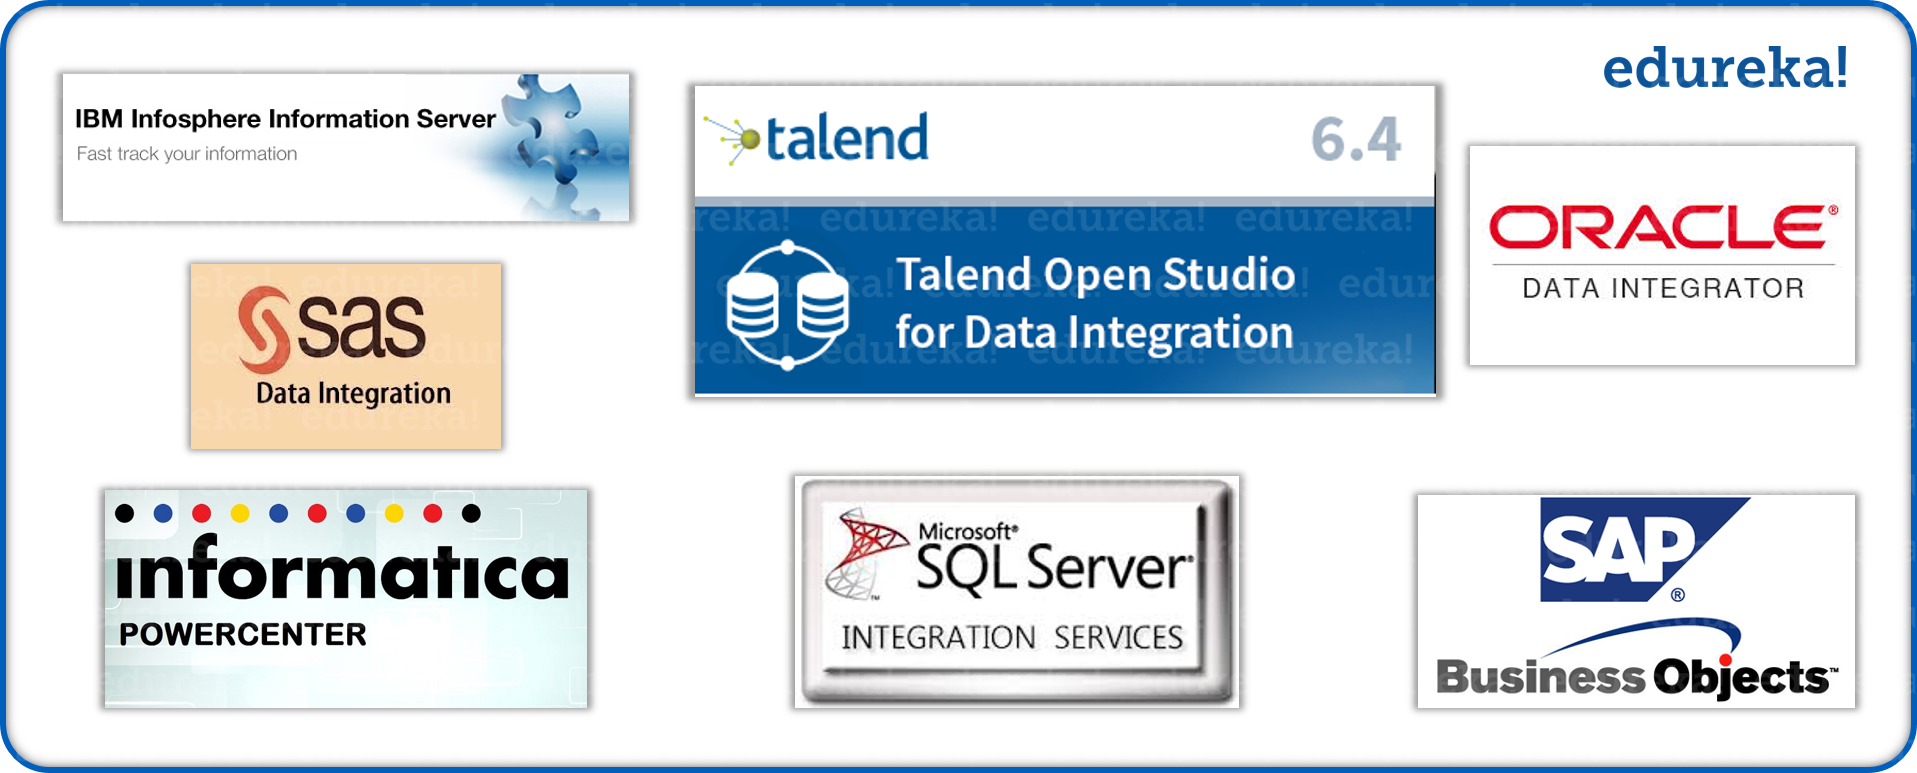 What are the advantages of using an ETL tool vs  handed coding? And